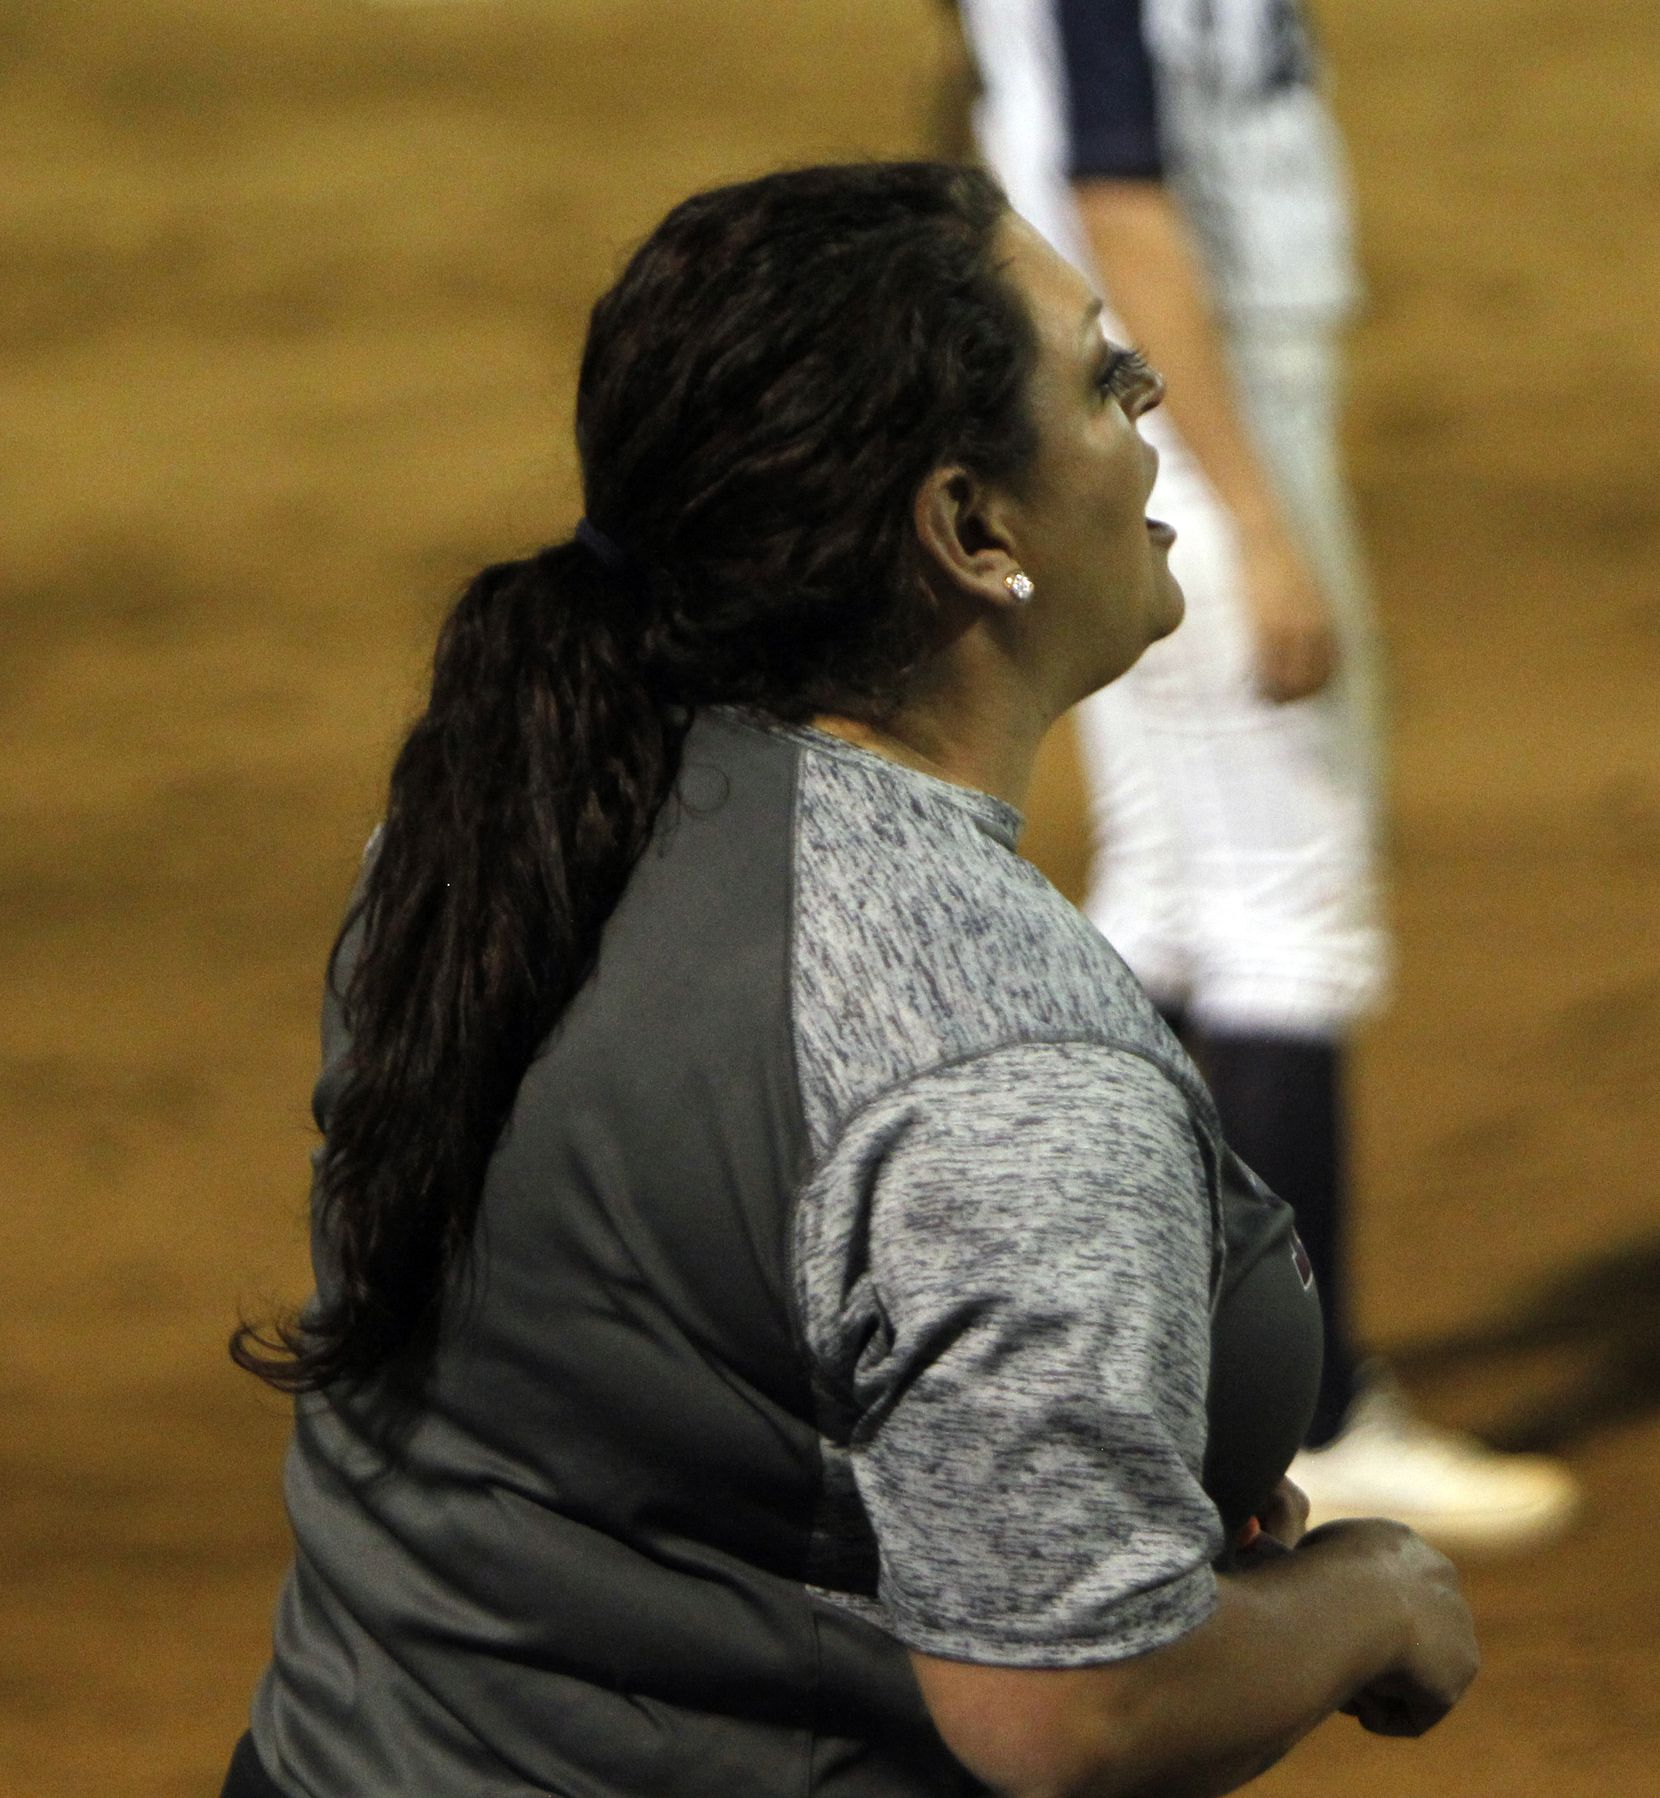 Plano head coach Brittany Welch coaches from outside the team dugout during the bottom of the 3rd inning of play against Flower Mound. The two teams played their District 6-6A softball game at Flower Mound High School in Flower Mound on March 23, 2021. (Steve Hamm/ Special Contributor)